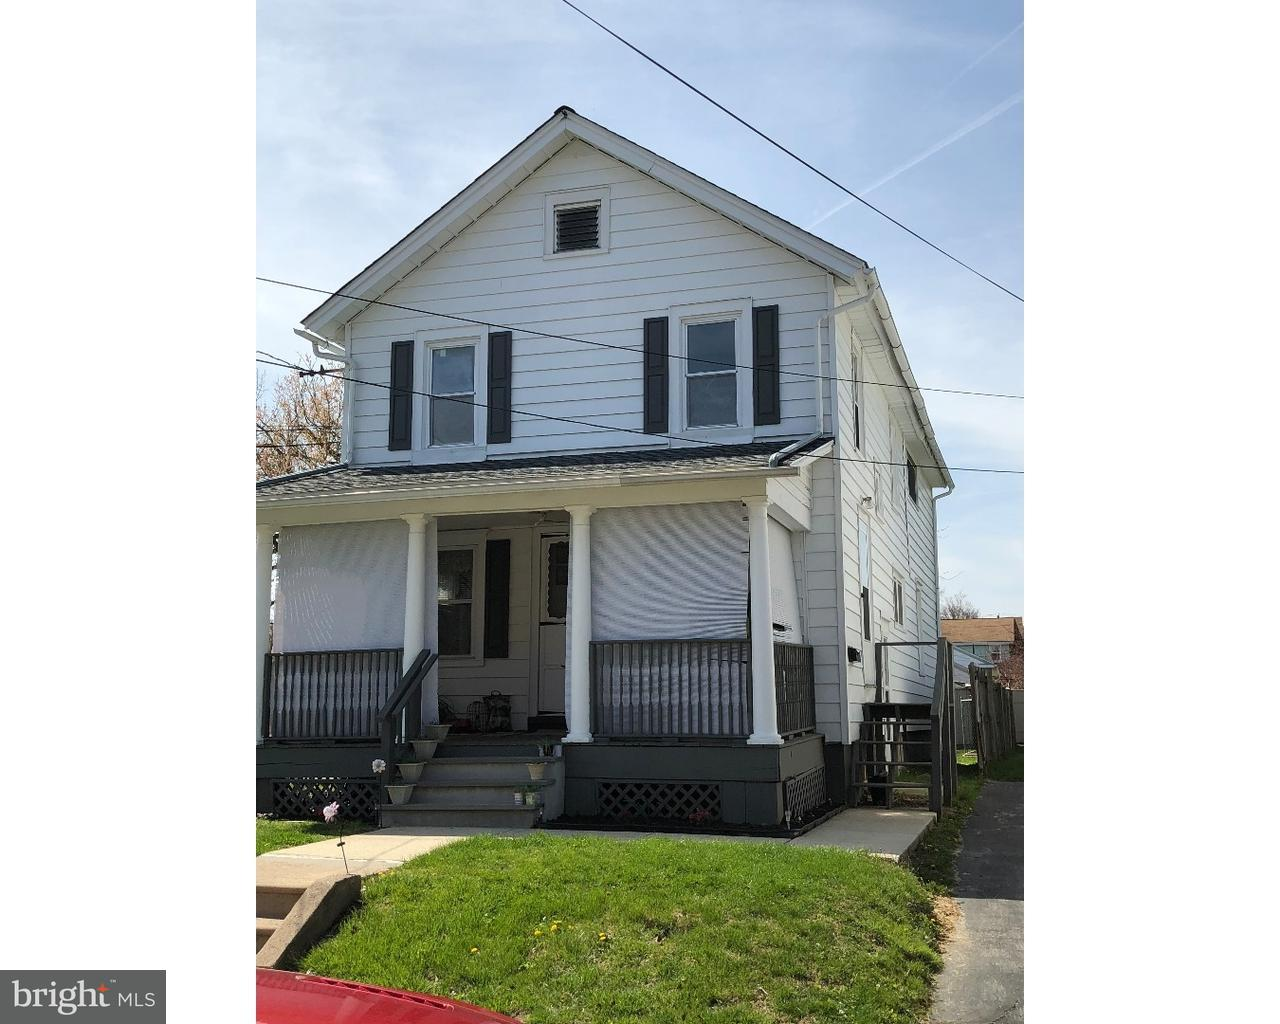 30 W ROLAND RD, BROOKHAVEN - Listed at $1,075, BROOKHAVEN